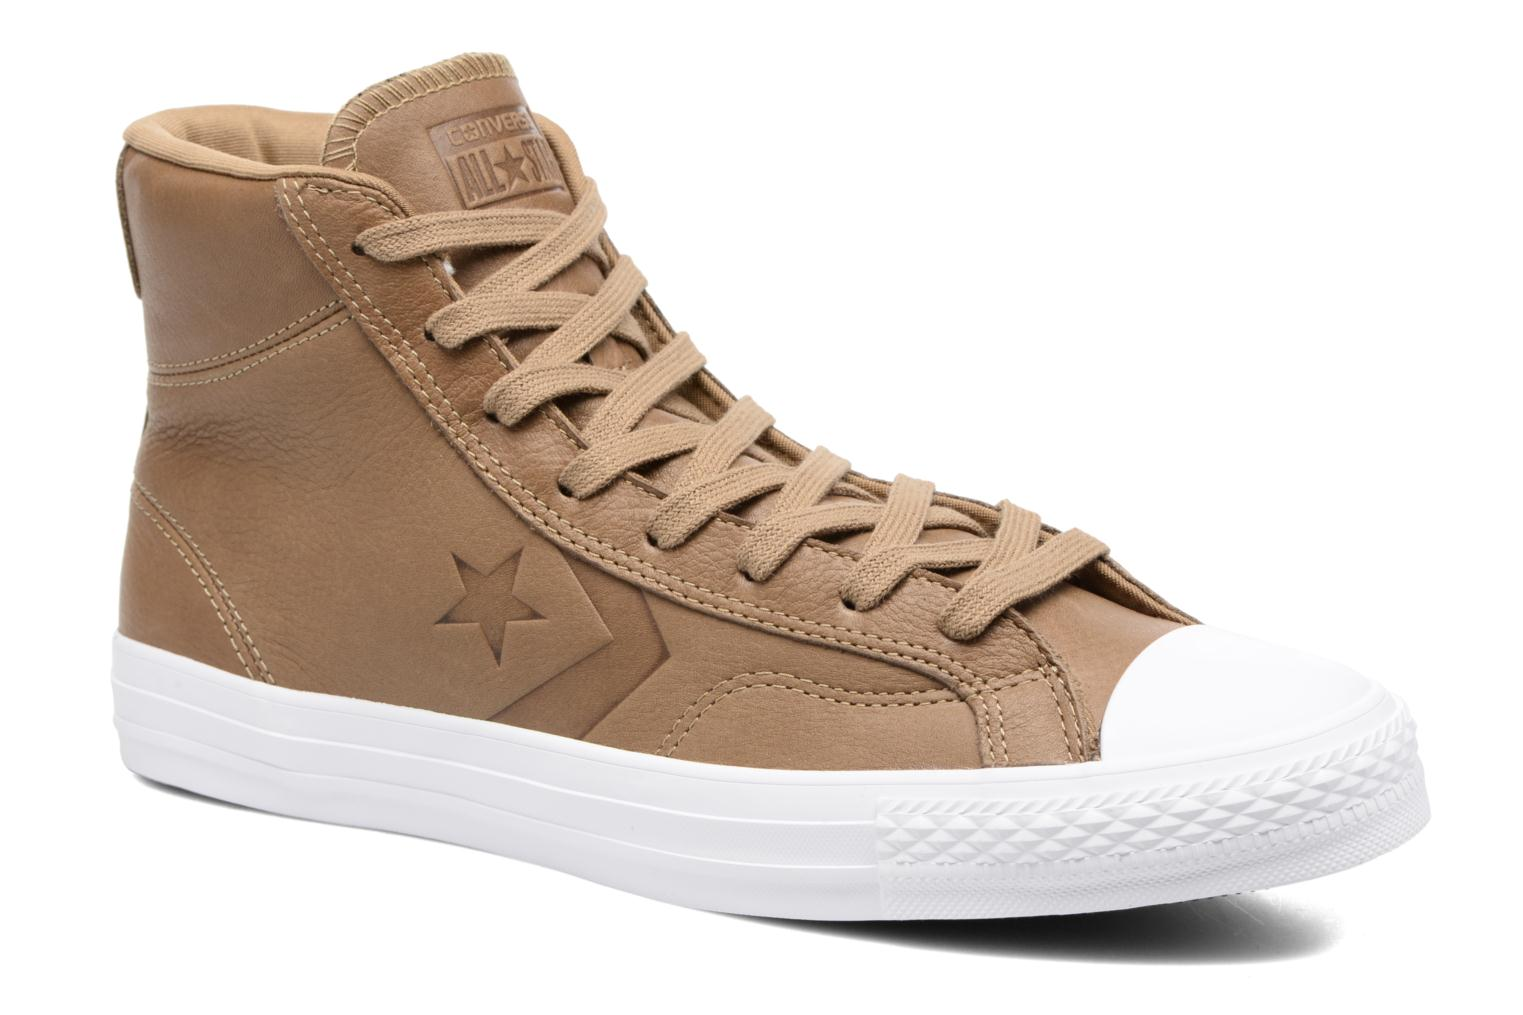 Converse Star Player Leather Hi Marrón hrsbxy1aXx